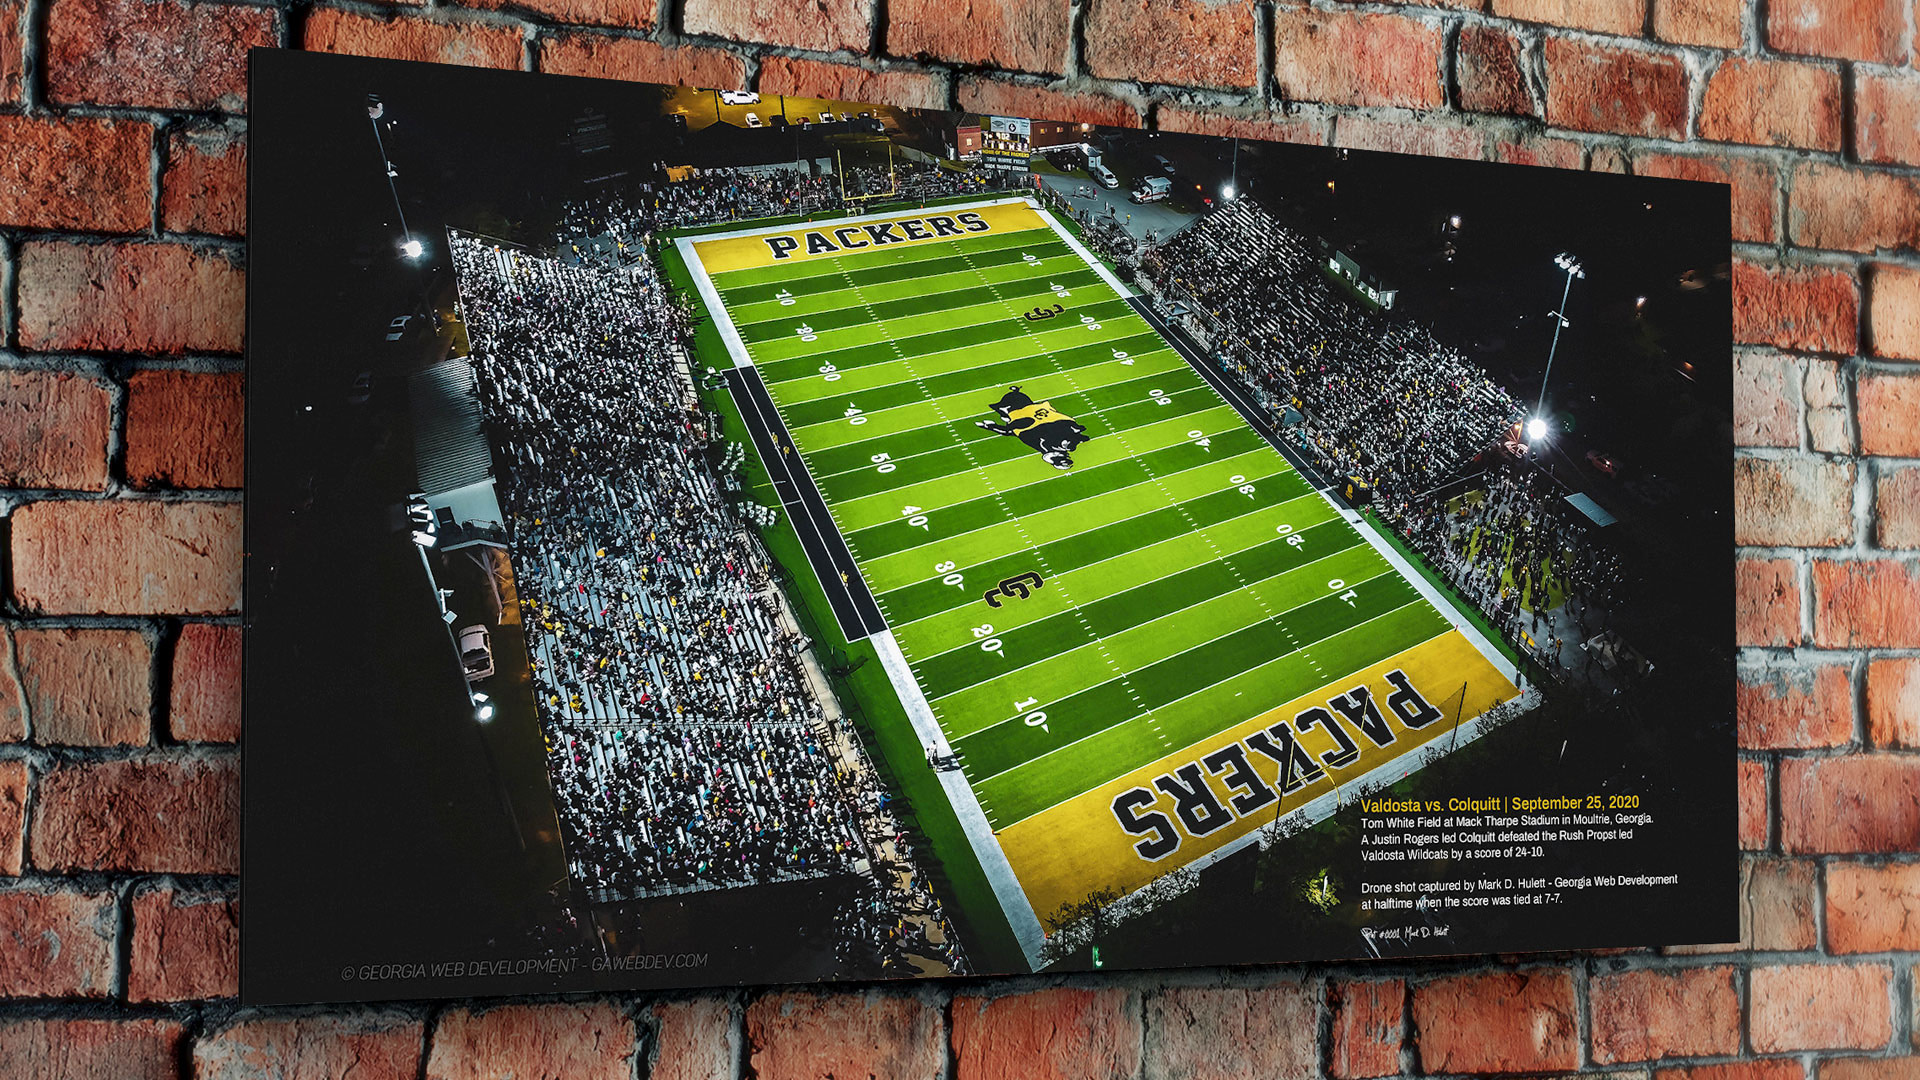 valdosta-vs-colquitt-2020-stadium-shot-print-demo-large-brick